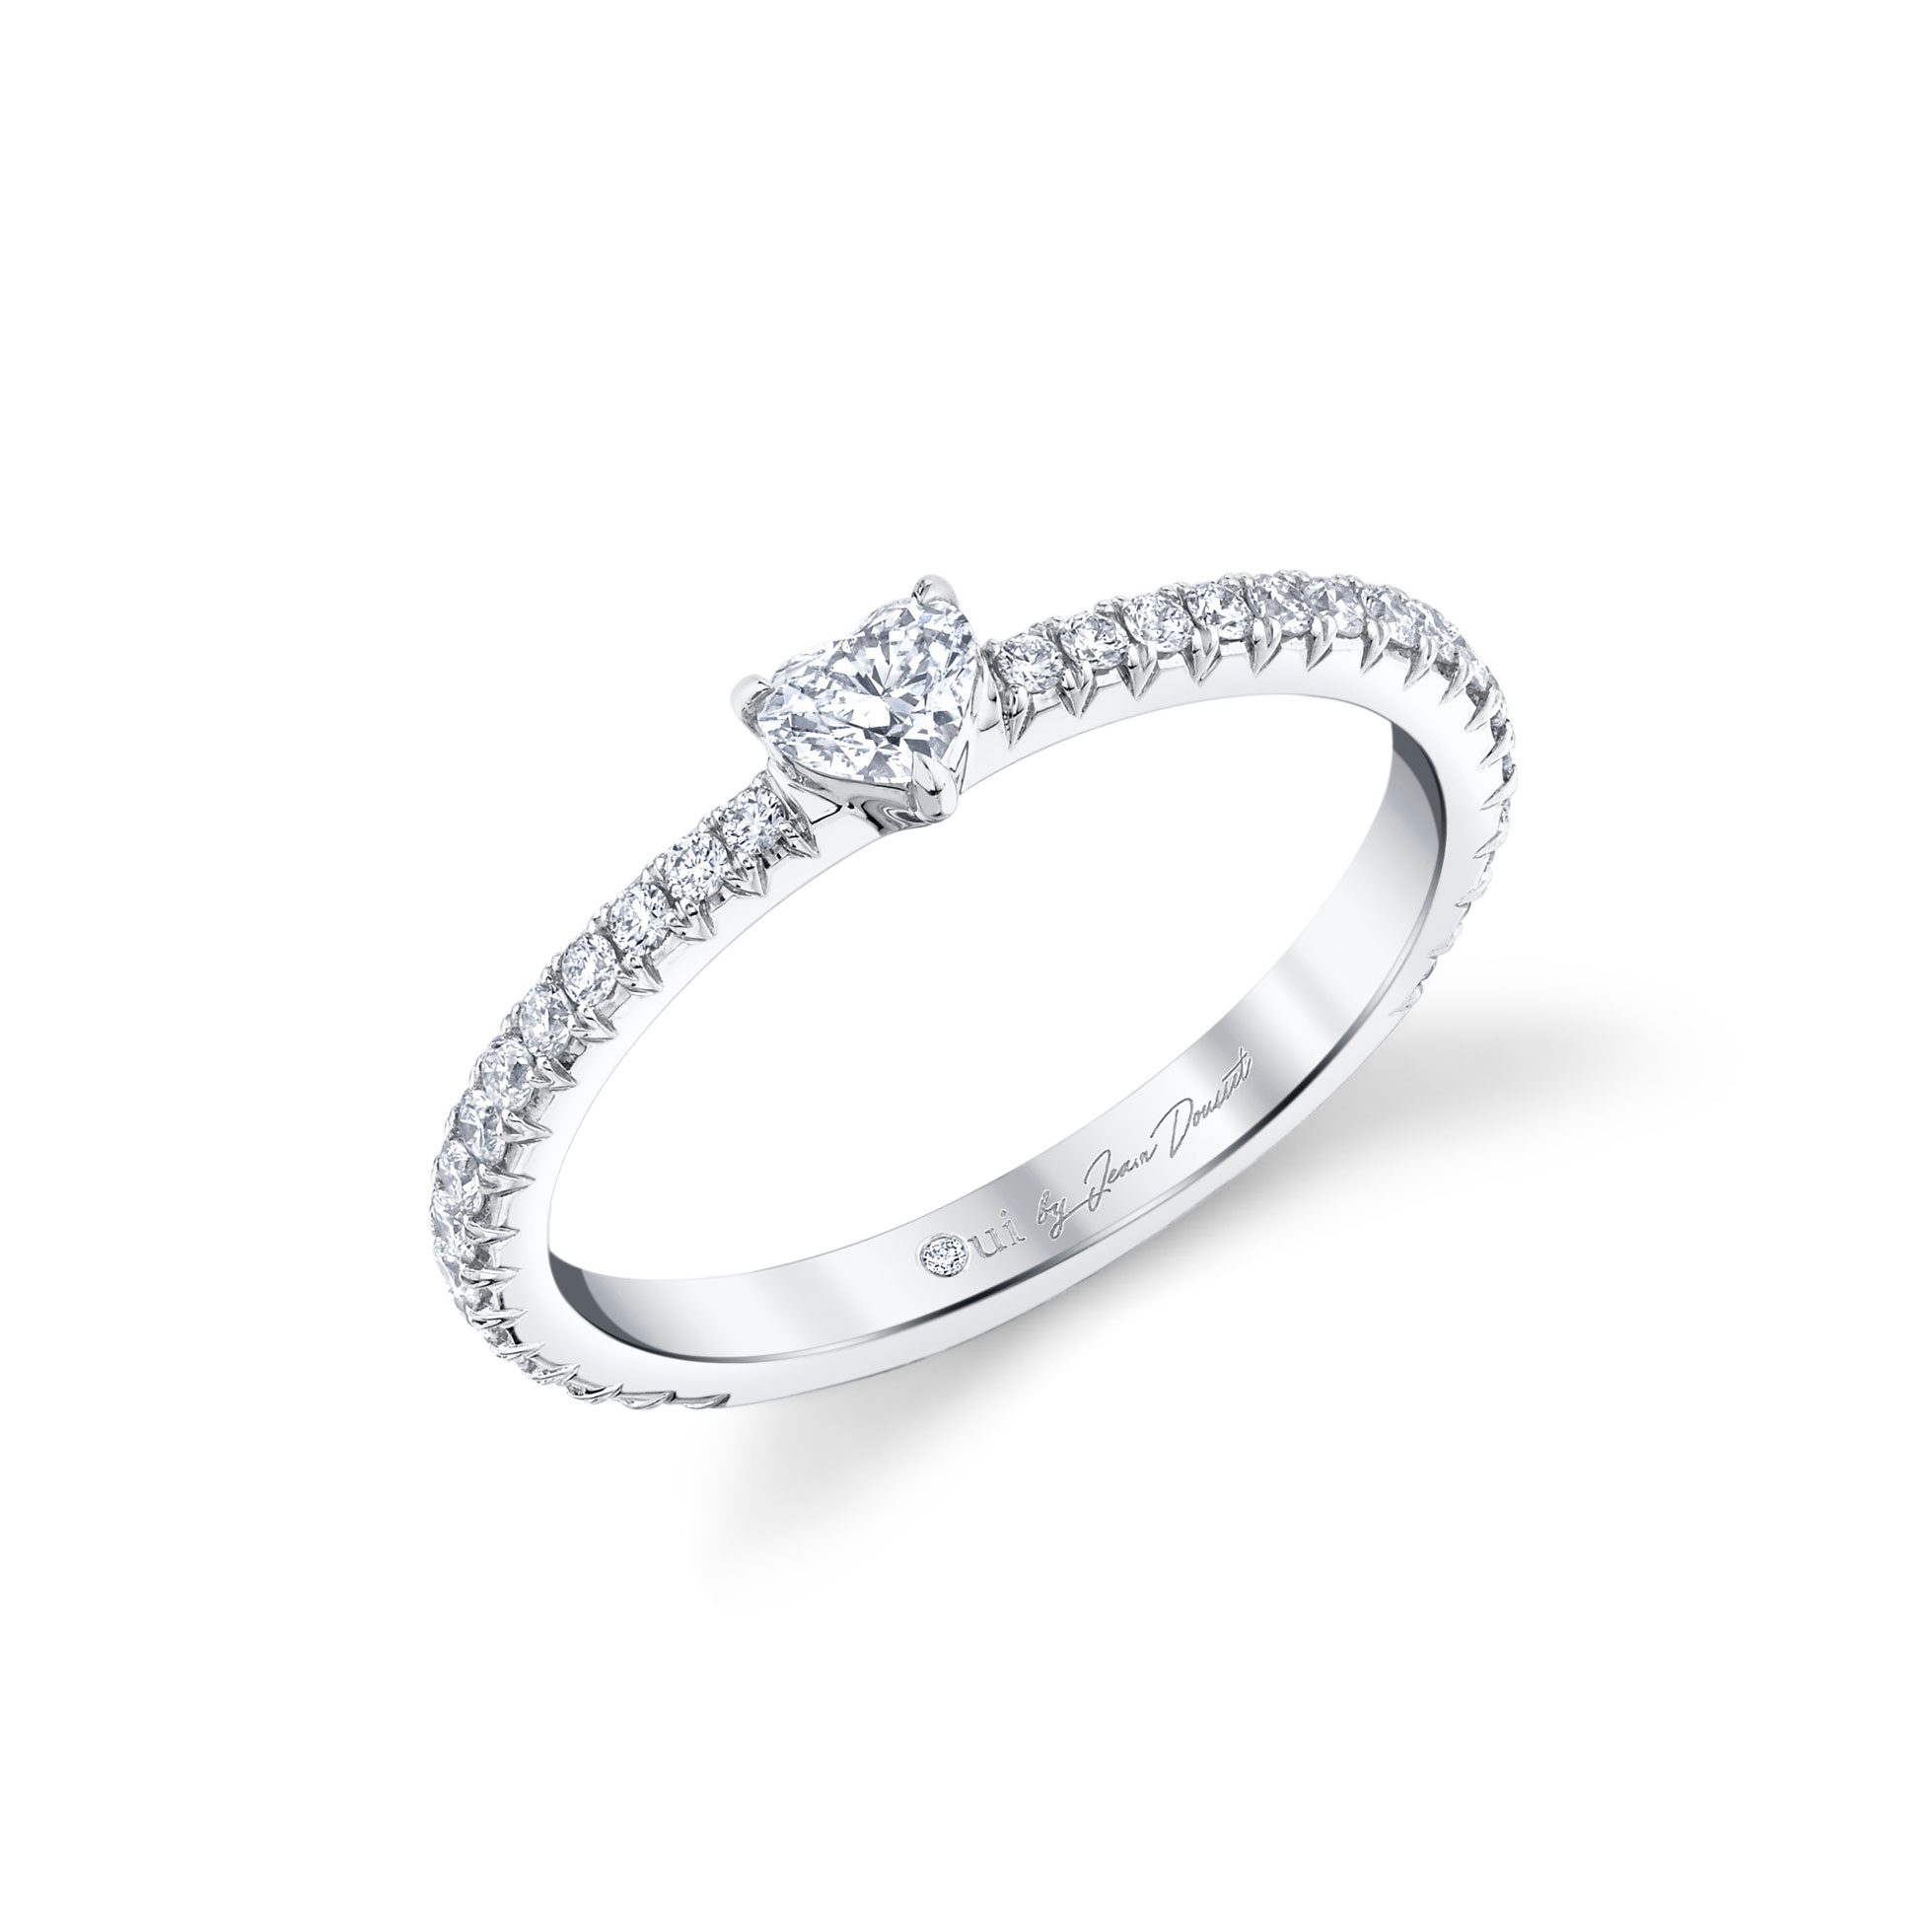 La Petite Heart Diamond Wedding Band with french pavé in 18k White Gold Standing View by Oui by Jean Dousset